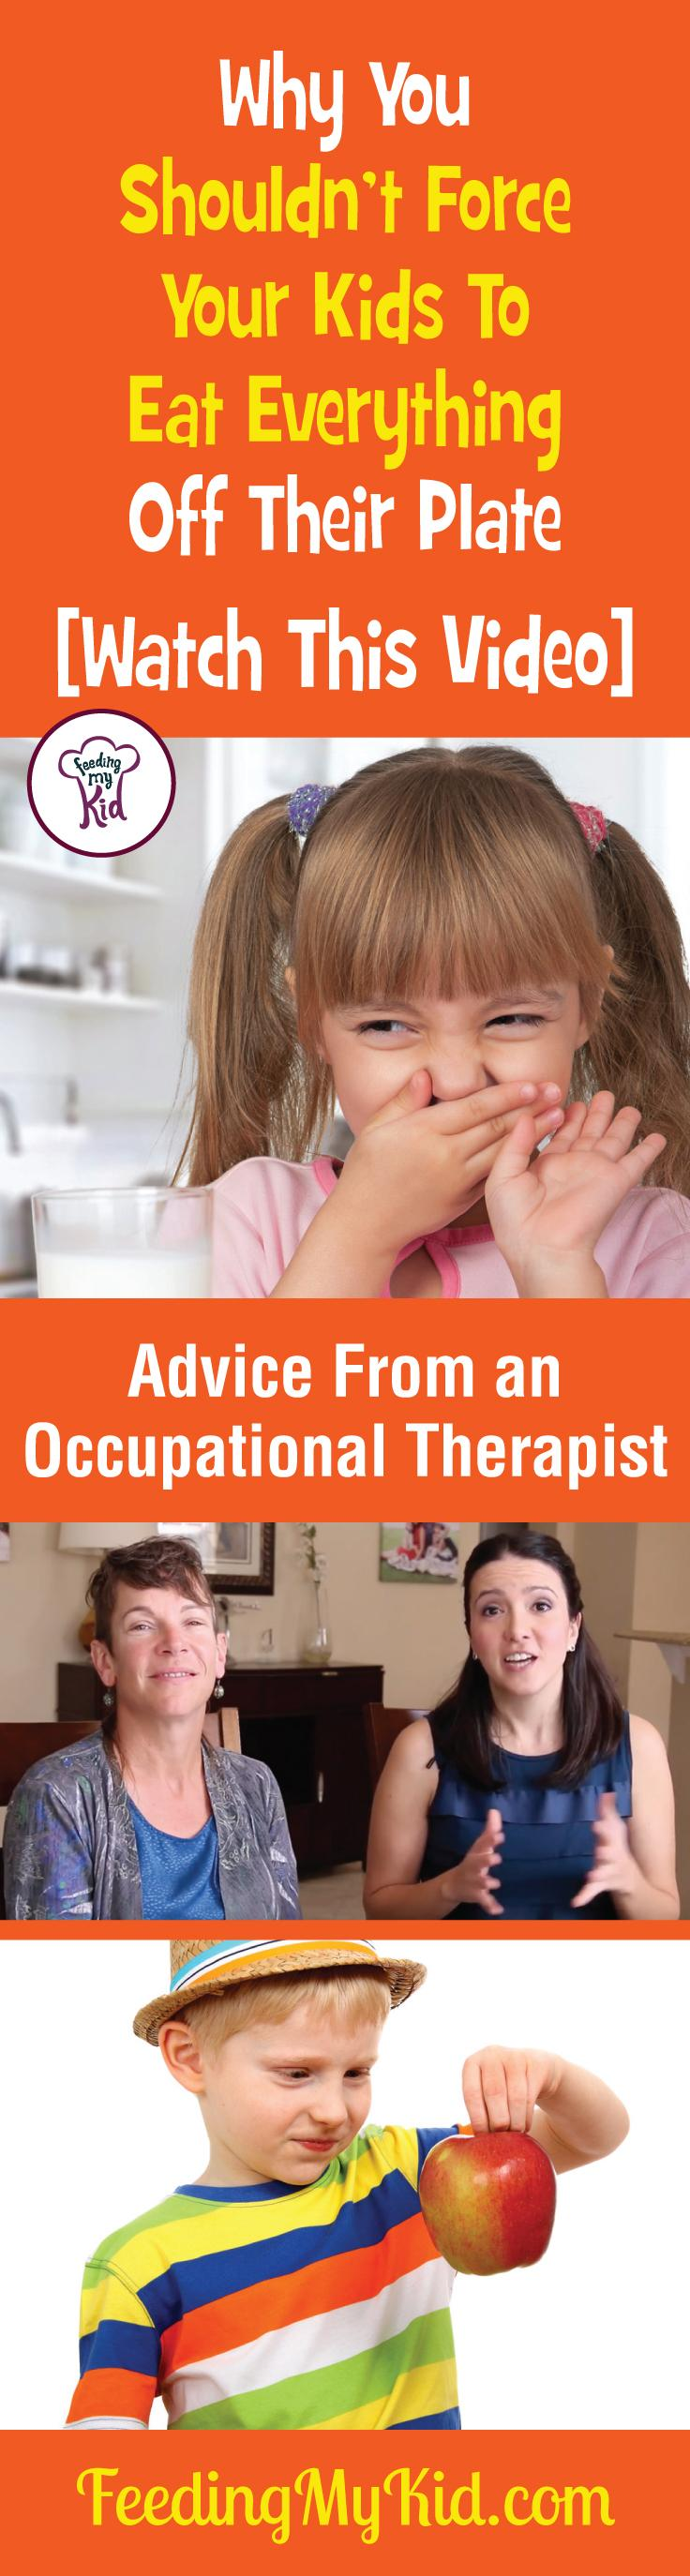 Some great parenting tips and advice from an occupational therapist. Find out how to get your kids to eat without forcing them to eat food off their plate. Feeding My Kid is a filled with all the information you need about how to raise your kids, from healthy tips to nutritious recipes. #FeedingMyKid #OccupationalTherapist #advice #kidshealth #parentingtips